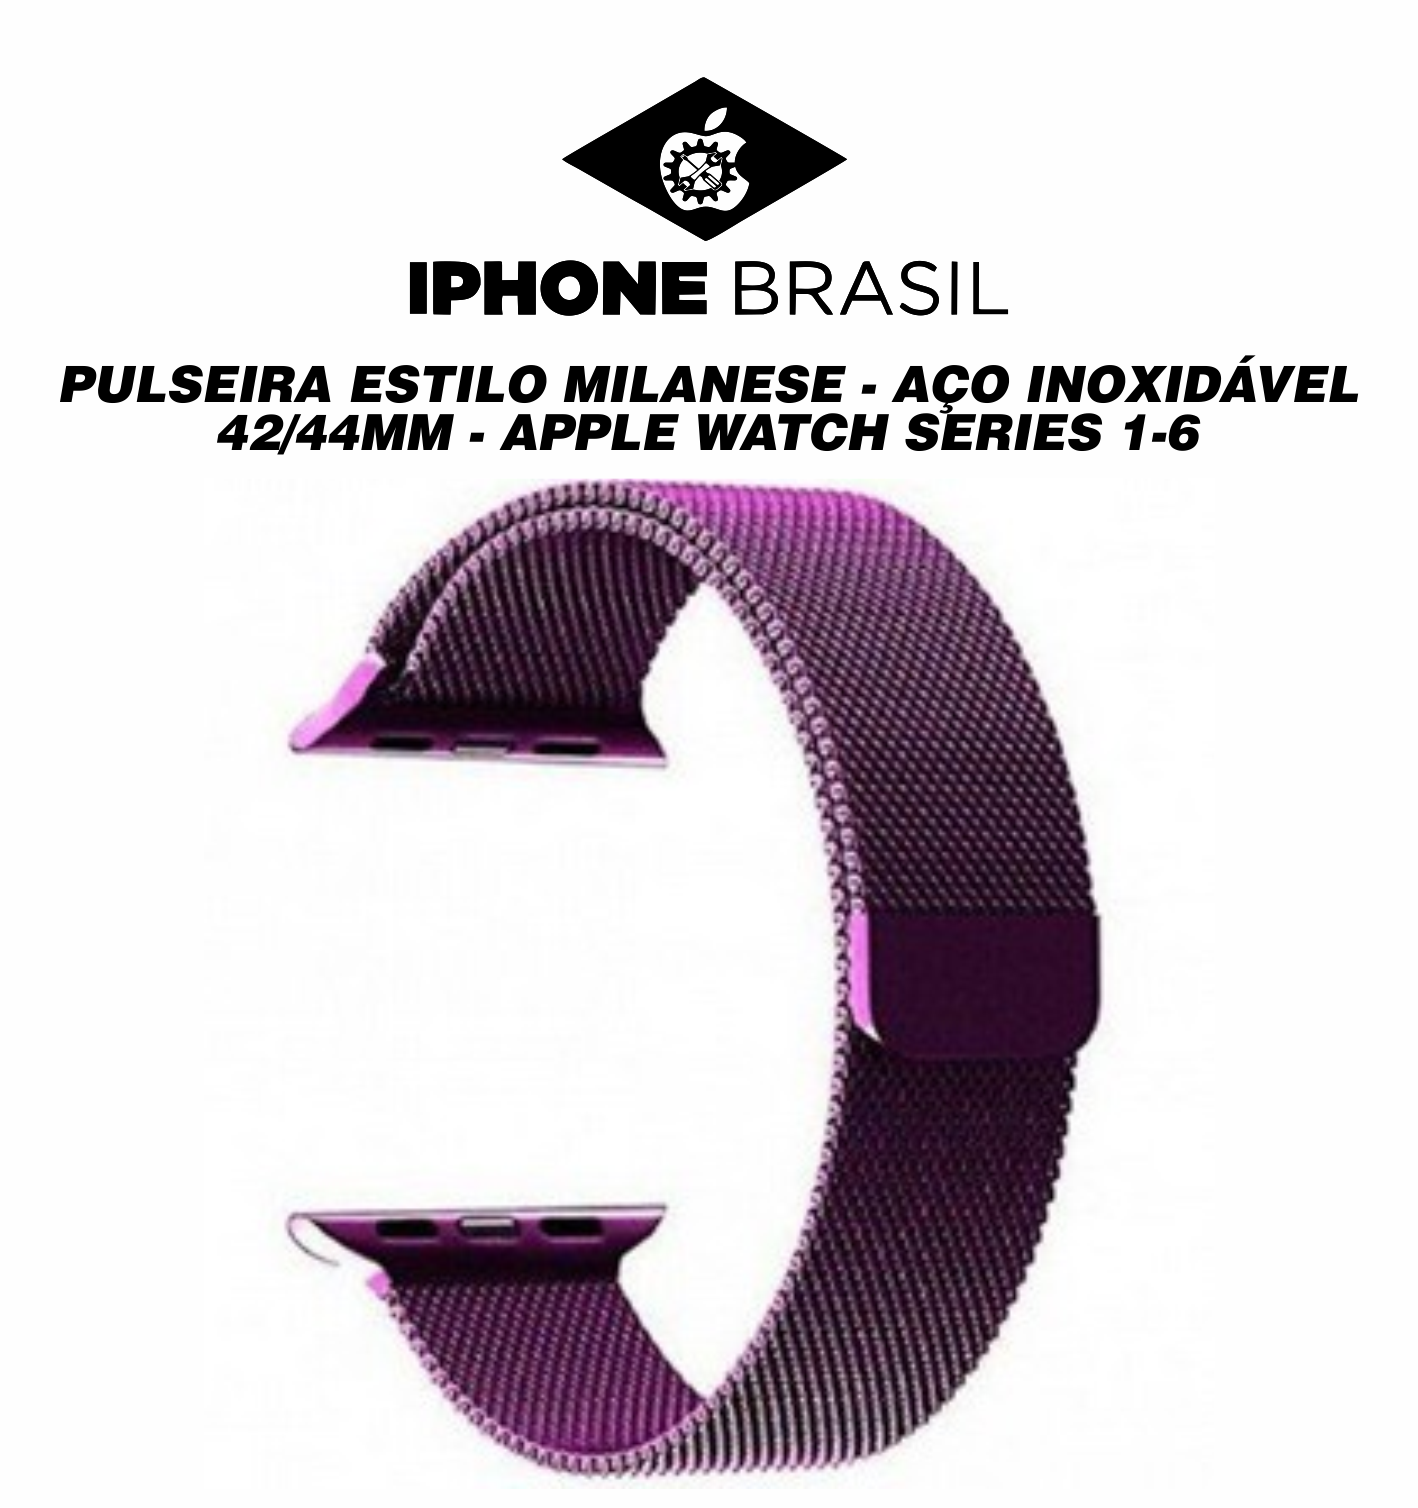 PULSEIRA APPLE WATCH 42/44MM -...